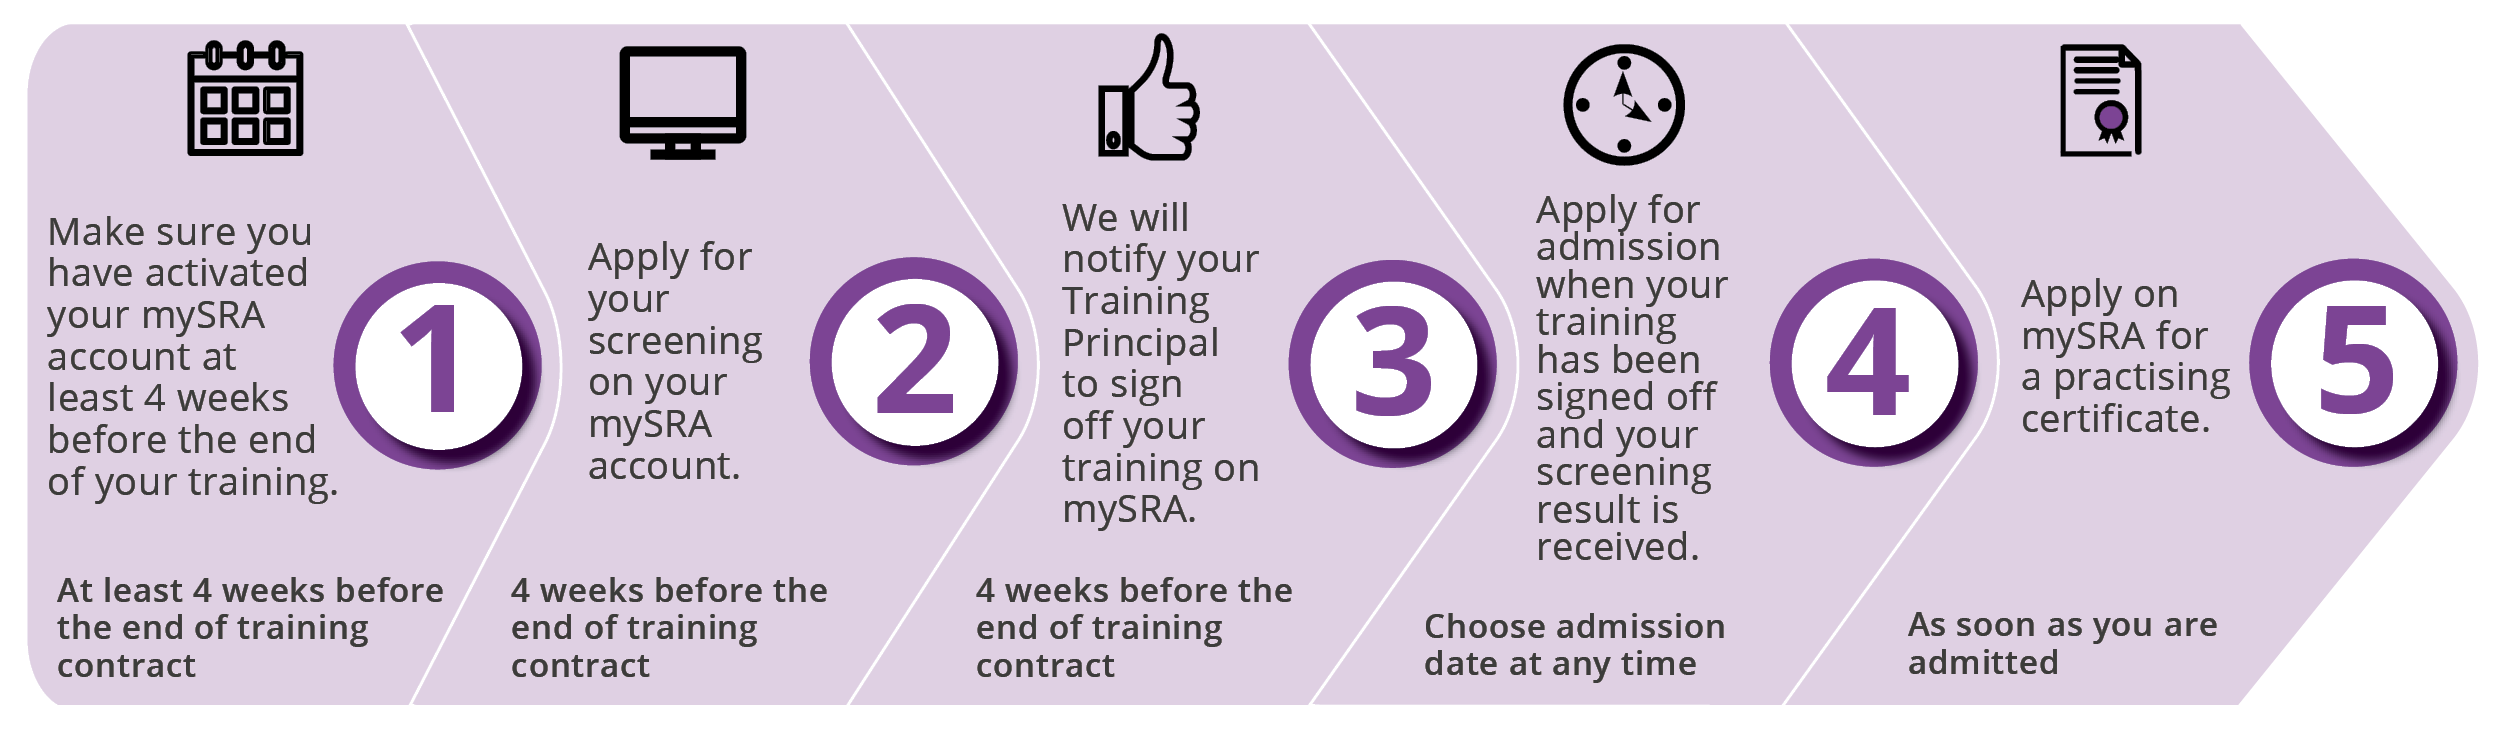 Trainee stages to admission - 1. Make sure you have activated your SRA account at least 4 weeks before the end of your training. (At least 4 weeks before the end of the training contract.) 2. Apply for your screening on your mySRA account (4 weeks before the end of training contract.) 3. We will notify your Training Principal to sign off your training on mySRA. (4 weeks before the end of training contract.) 4. Apply for admission when your training has been signed off and your screening result is received. (Choose admission date at any time.) 5. Apply on mySRA for a practising certificate. (As soon as you are admitted.)